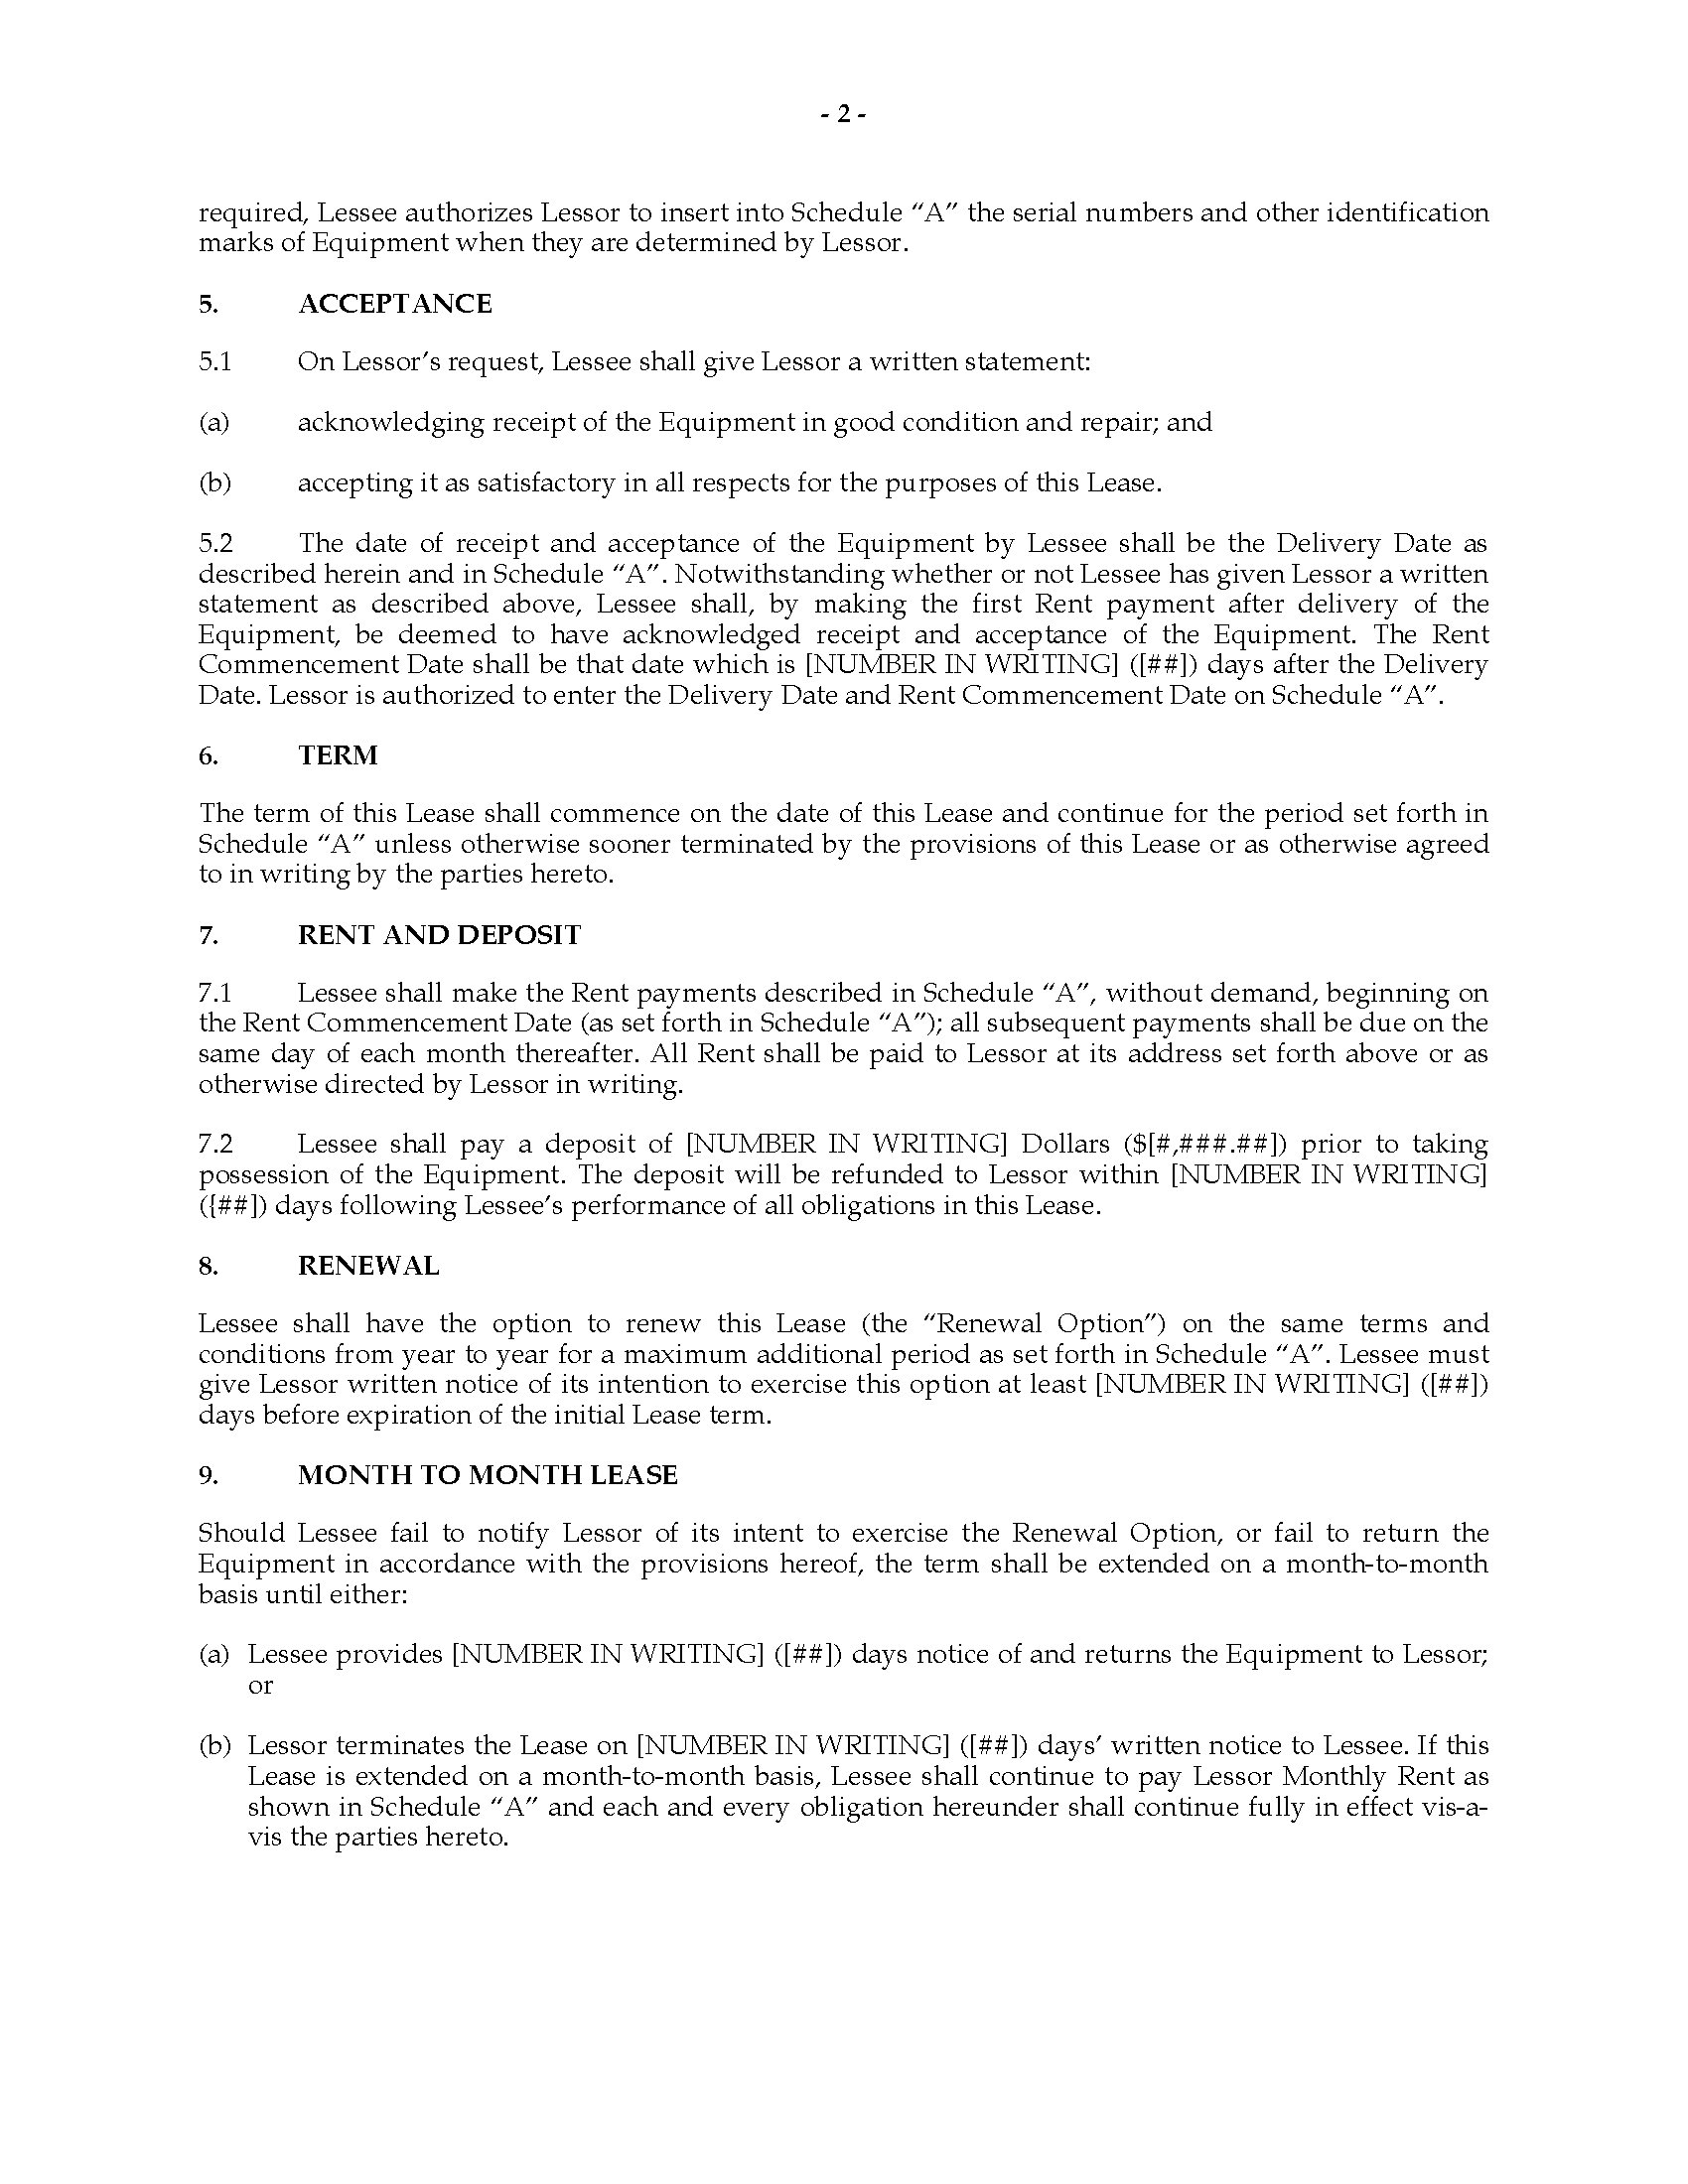 Picture Of Florida Equipment Lease Agreement Picture Of Florida Equipment  Lease Agreement ...